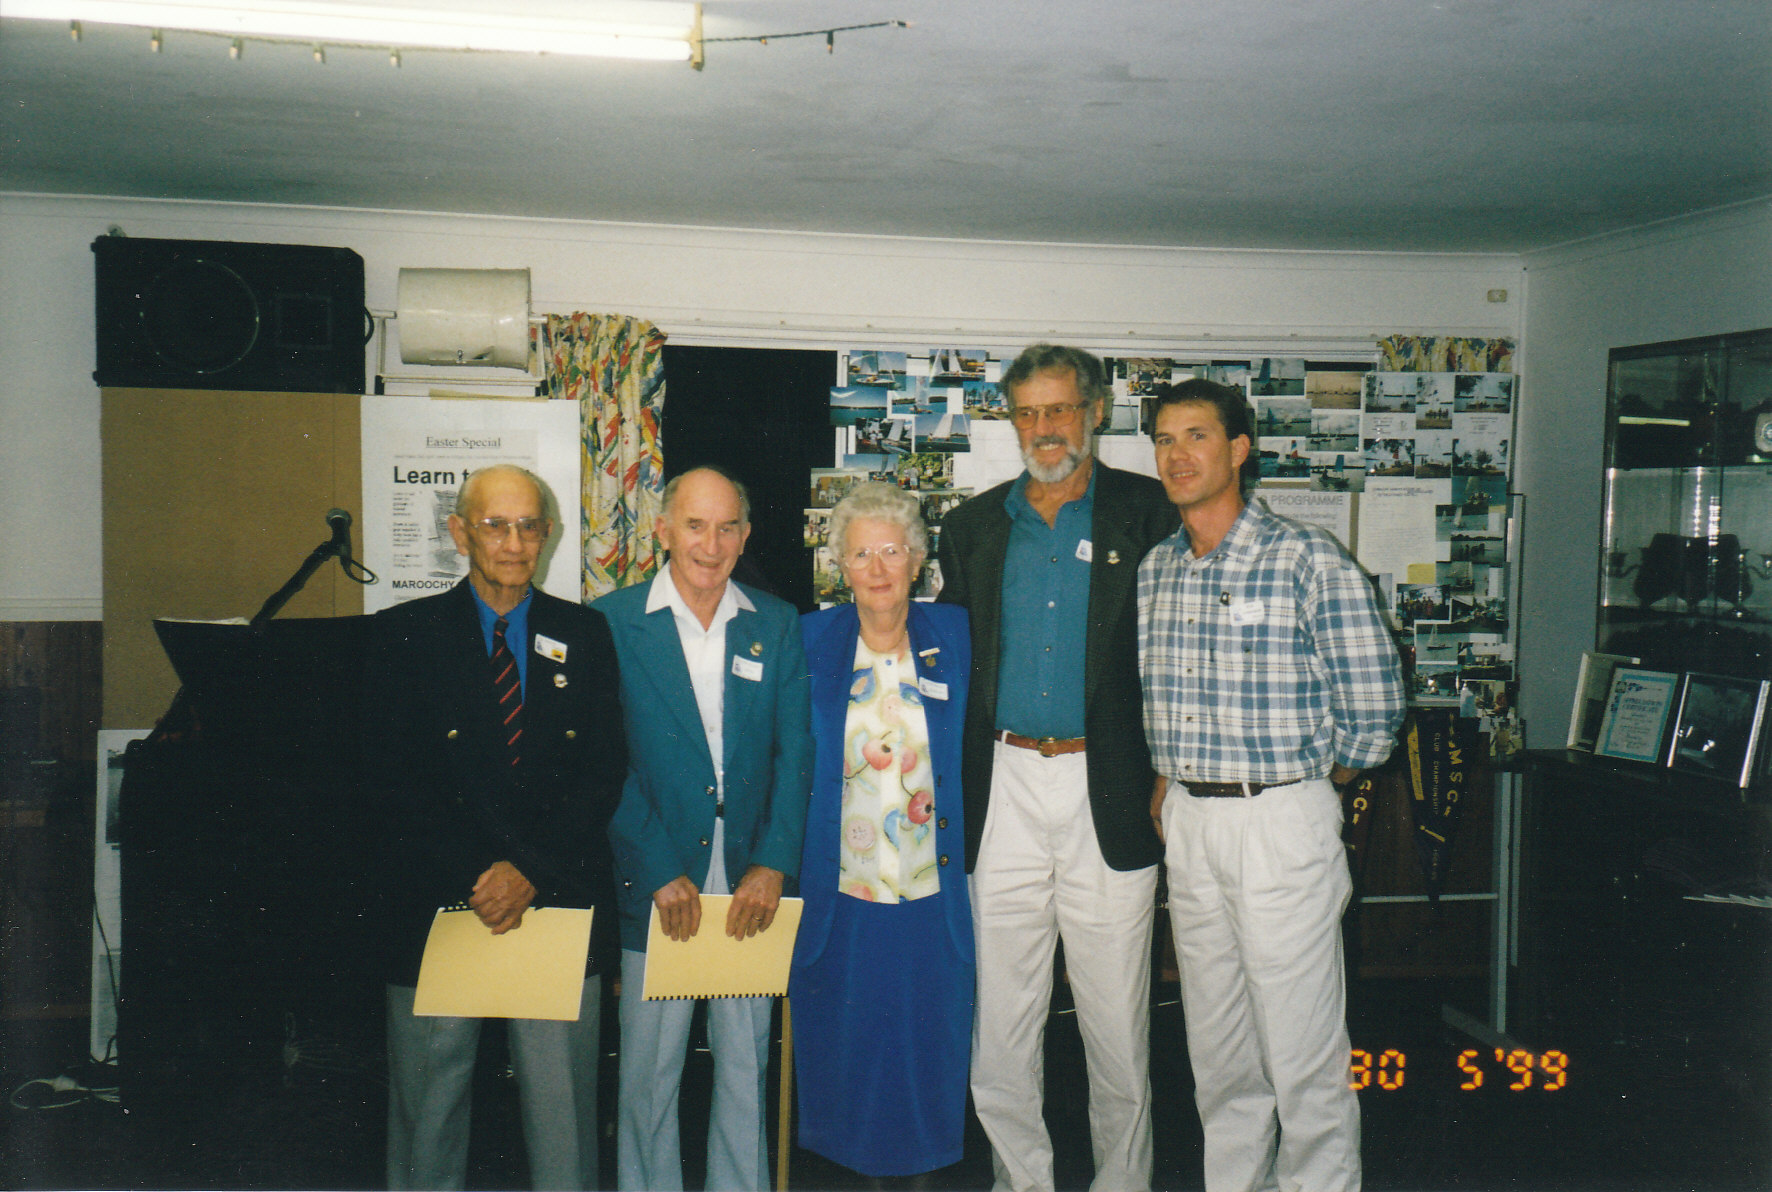 LifE Members 1999 : Charles Smith, Noel Etherton, Shirley McDonald, Fred Downes, Keith Campbell